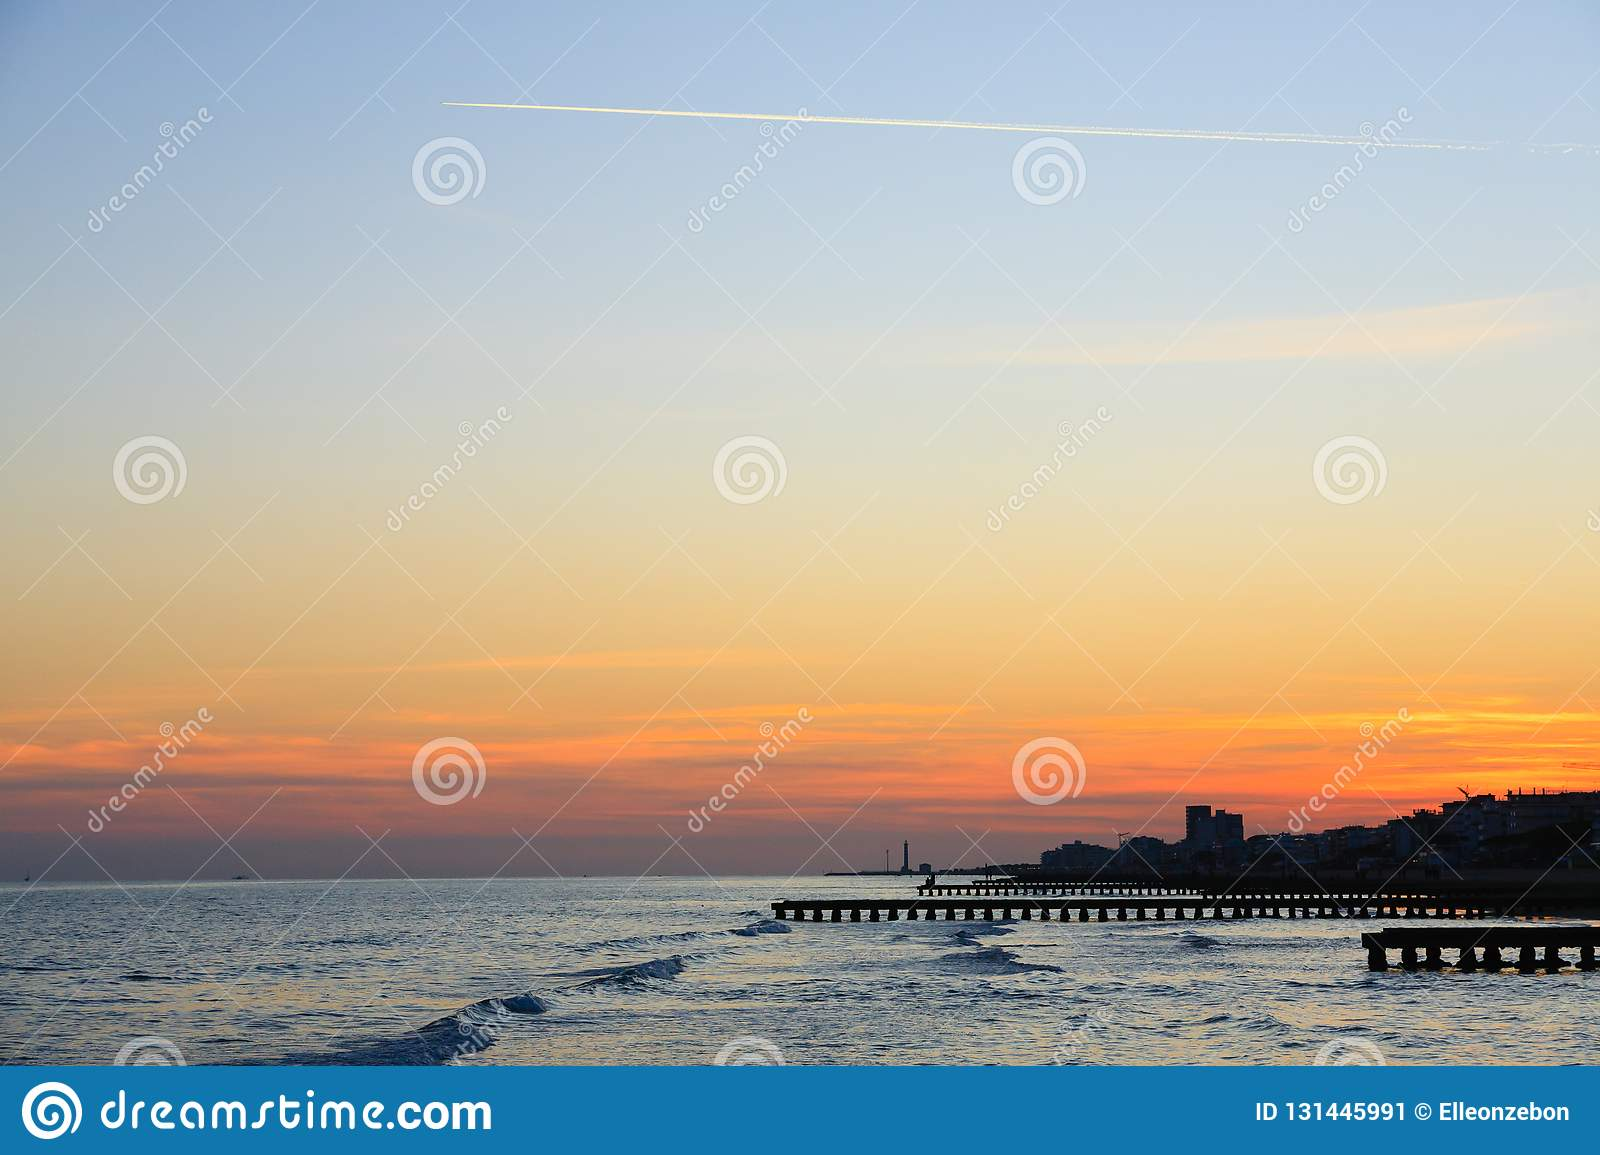 Beach landscape at dawn. Piers perspective view with people. Jesolo beach view